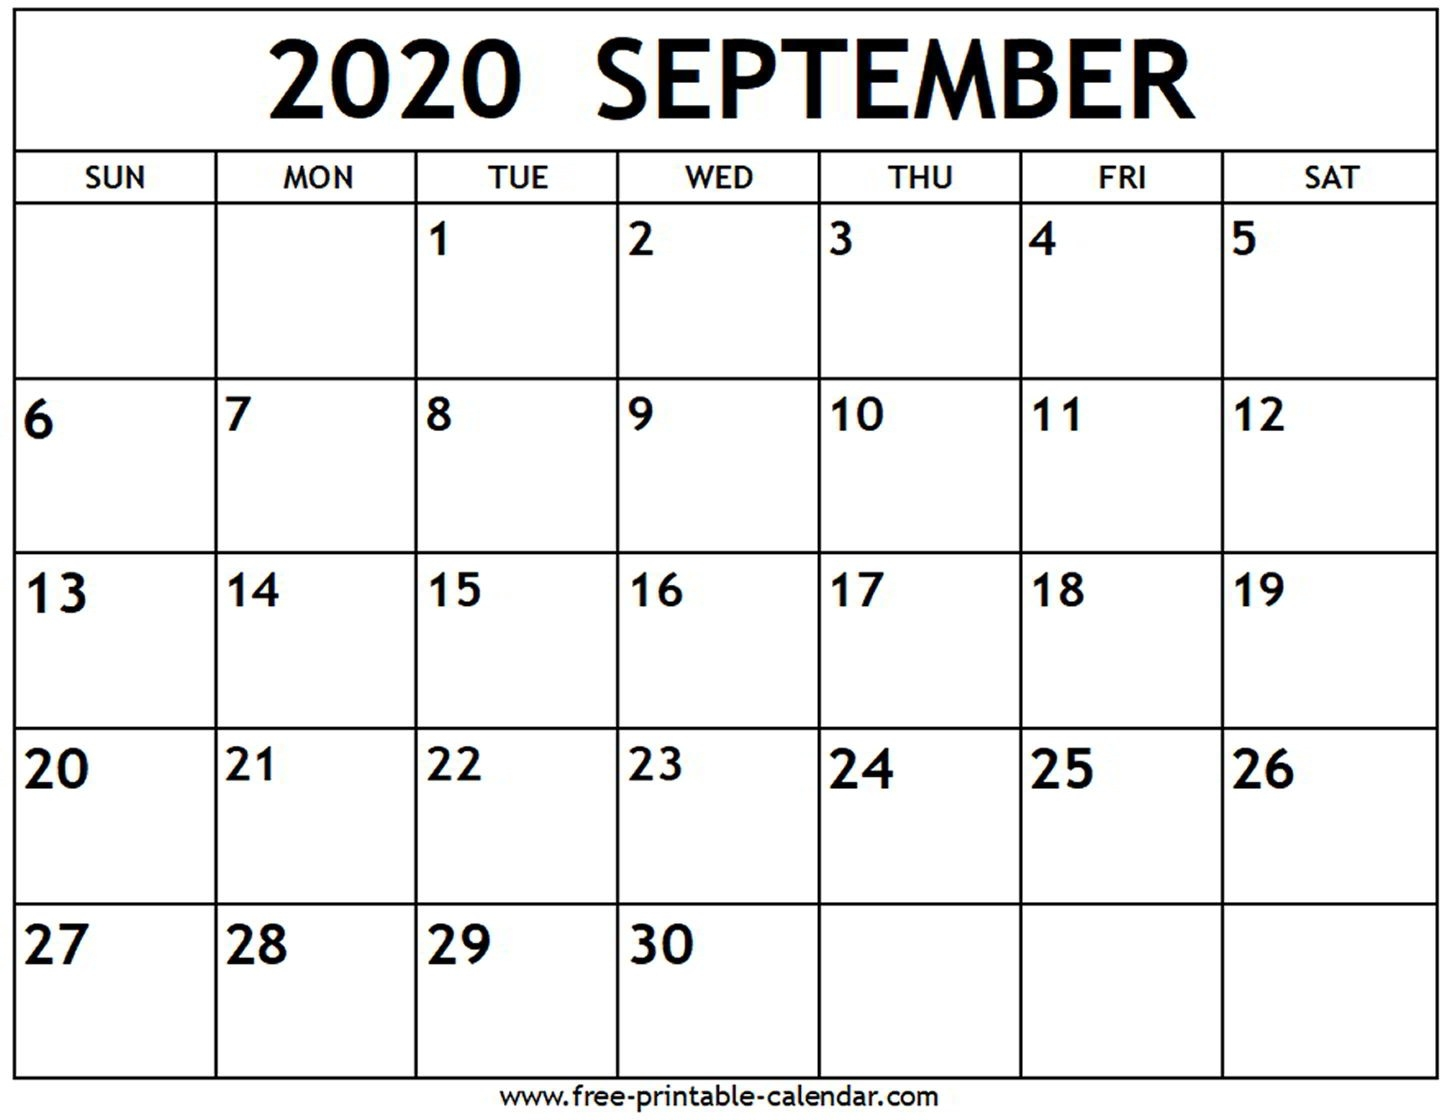 September 2020 Calendar - Free-Printable-Calendar  Calandar For August To December 2020